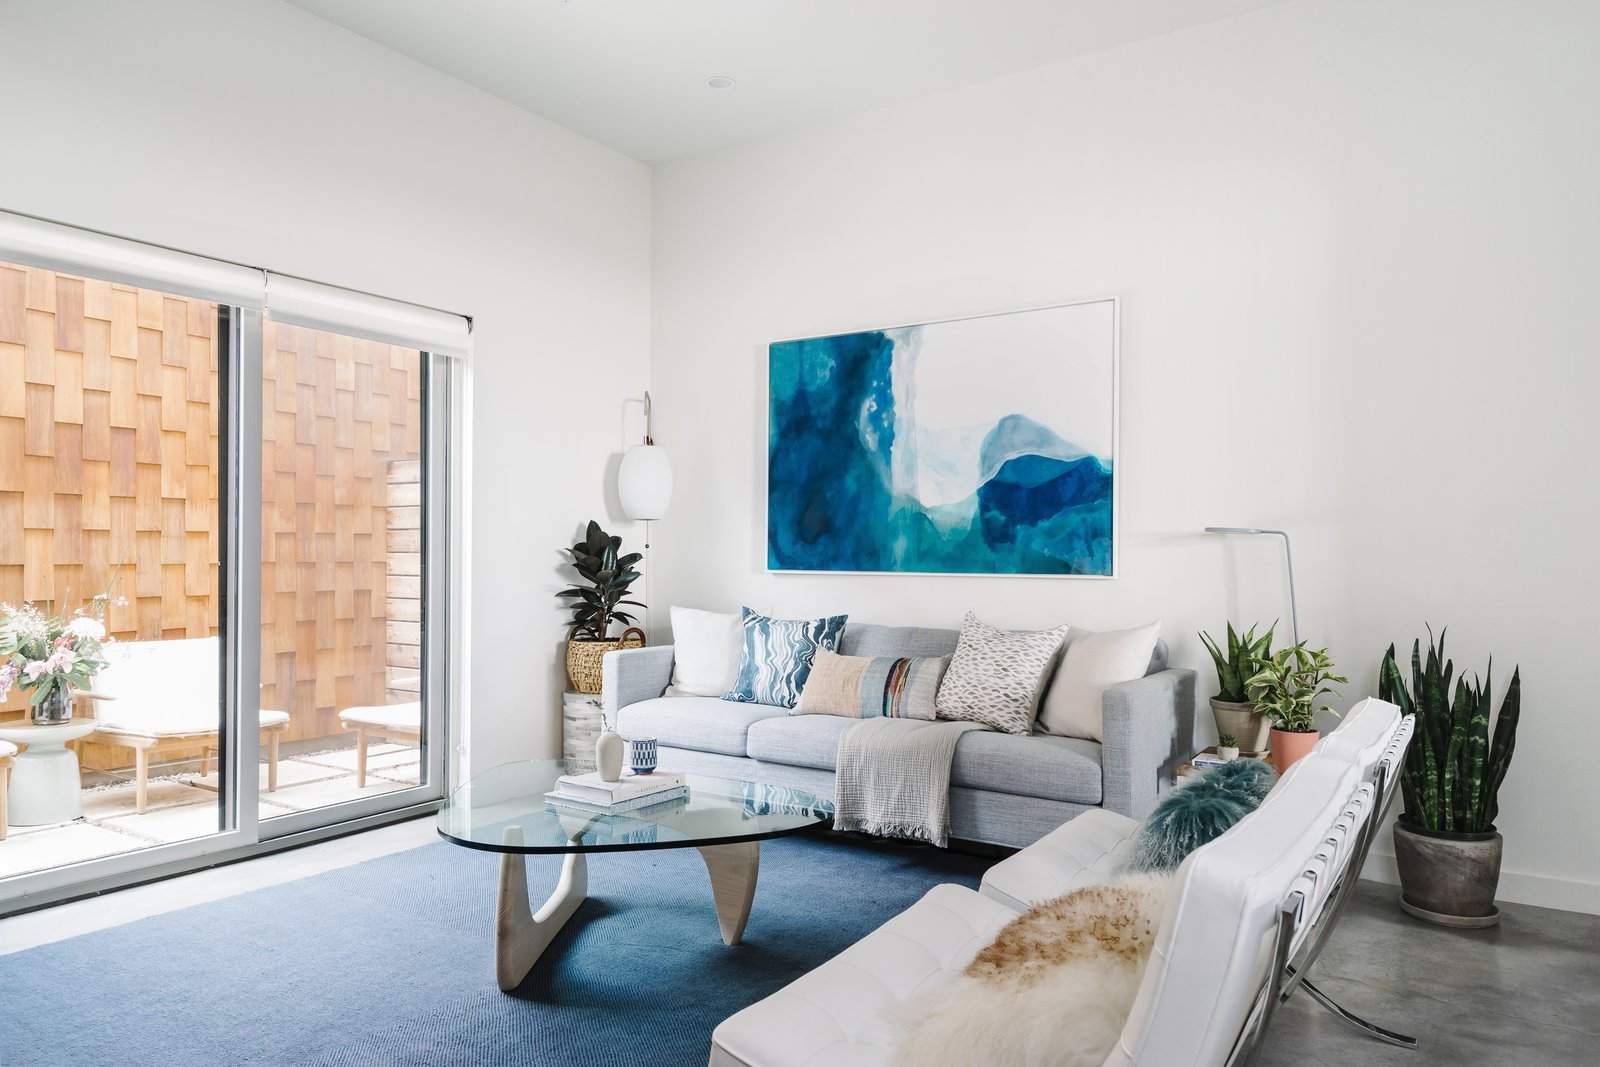 Living Room, Chair, Lamps, End Tables, Sofa, Coffee Tables, Concrete Floor, and Floor Lighting  St. Barts-Inspired Tilley Row Home from St. Barts-Inspired Accents Create Modern Tranquility in an Austin Tilley Row Home